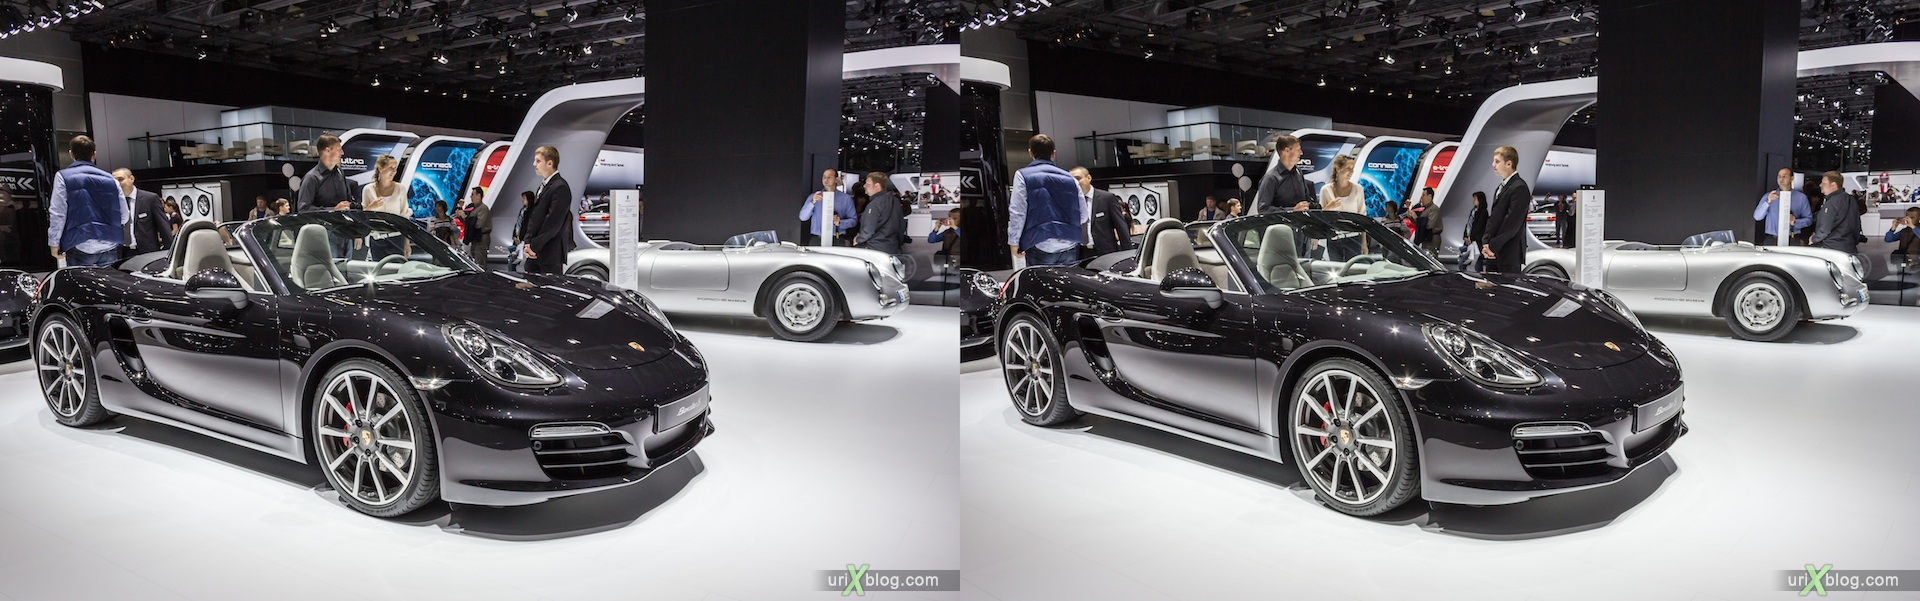 2012, Porsche Boxster S, Moscow International Automobile Salon, auto show, 3D, stereo pair, cross-eyed, crossview